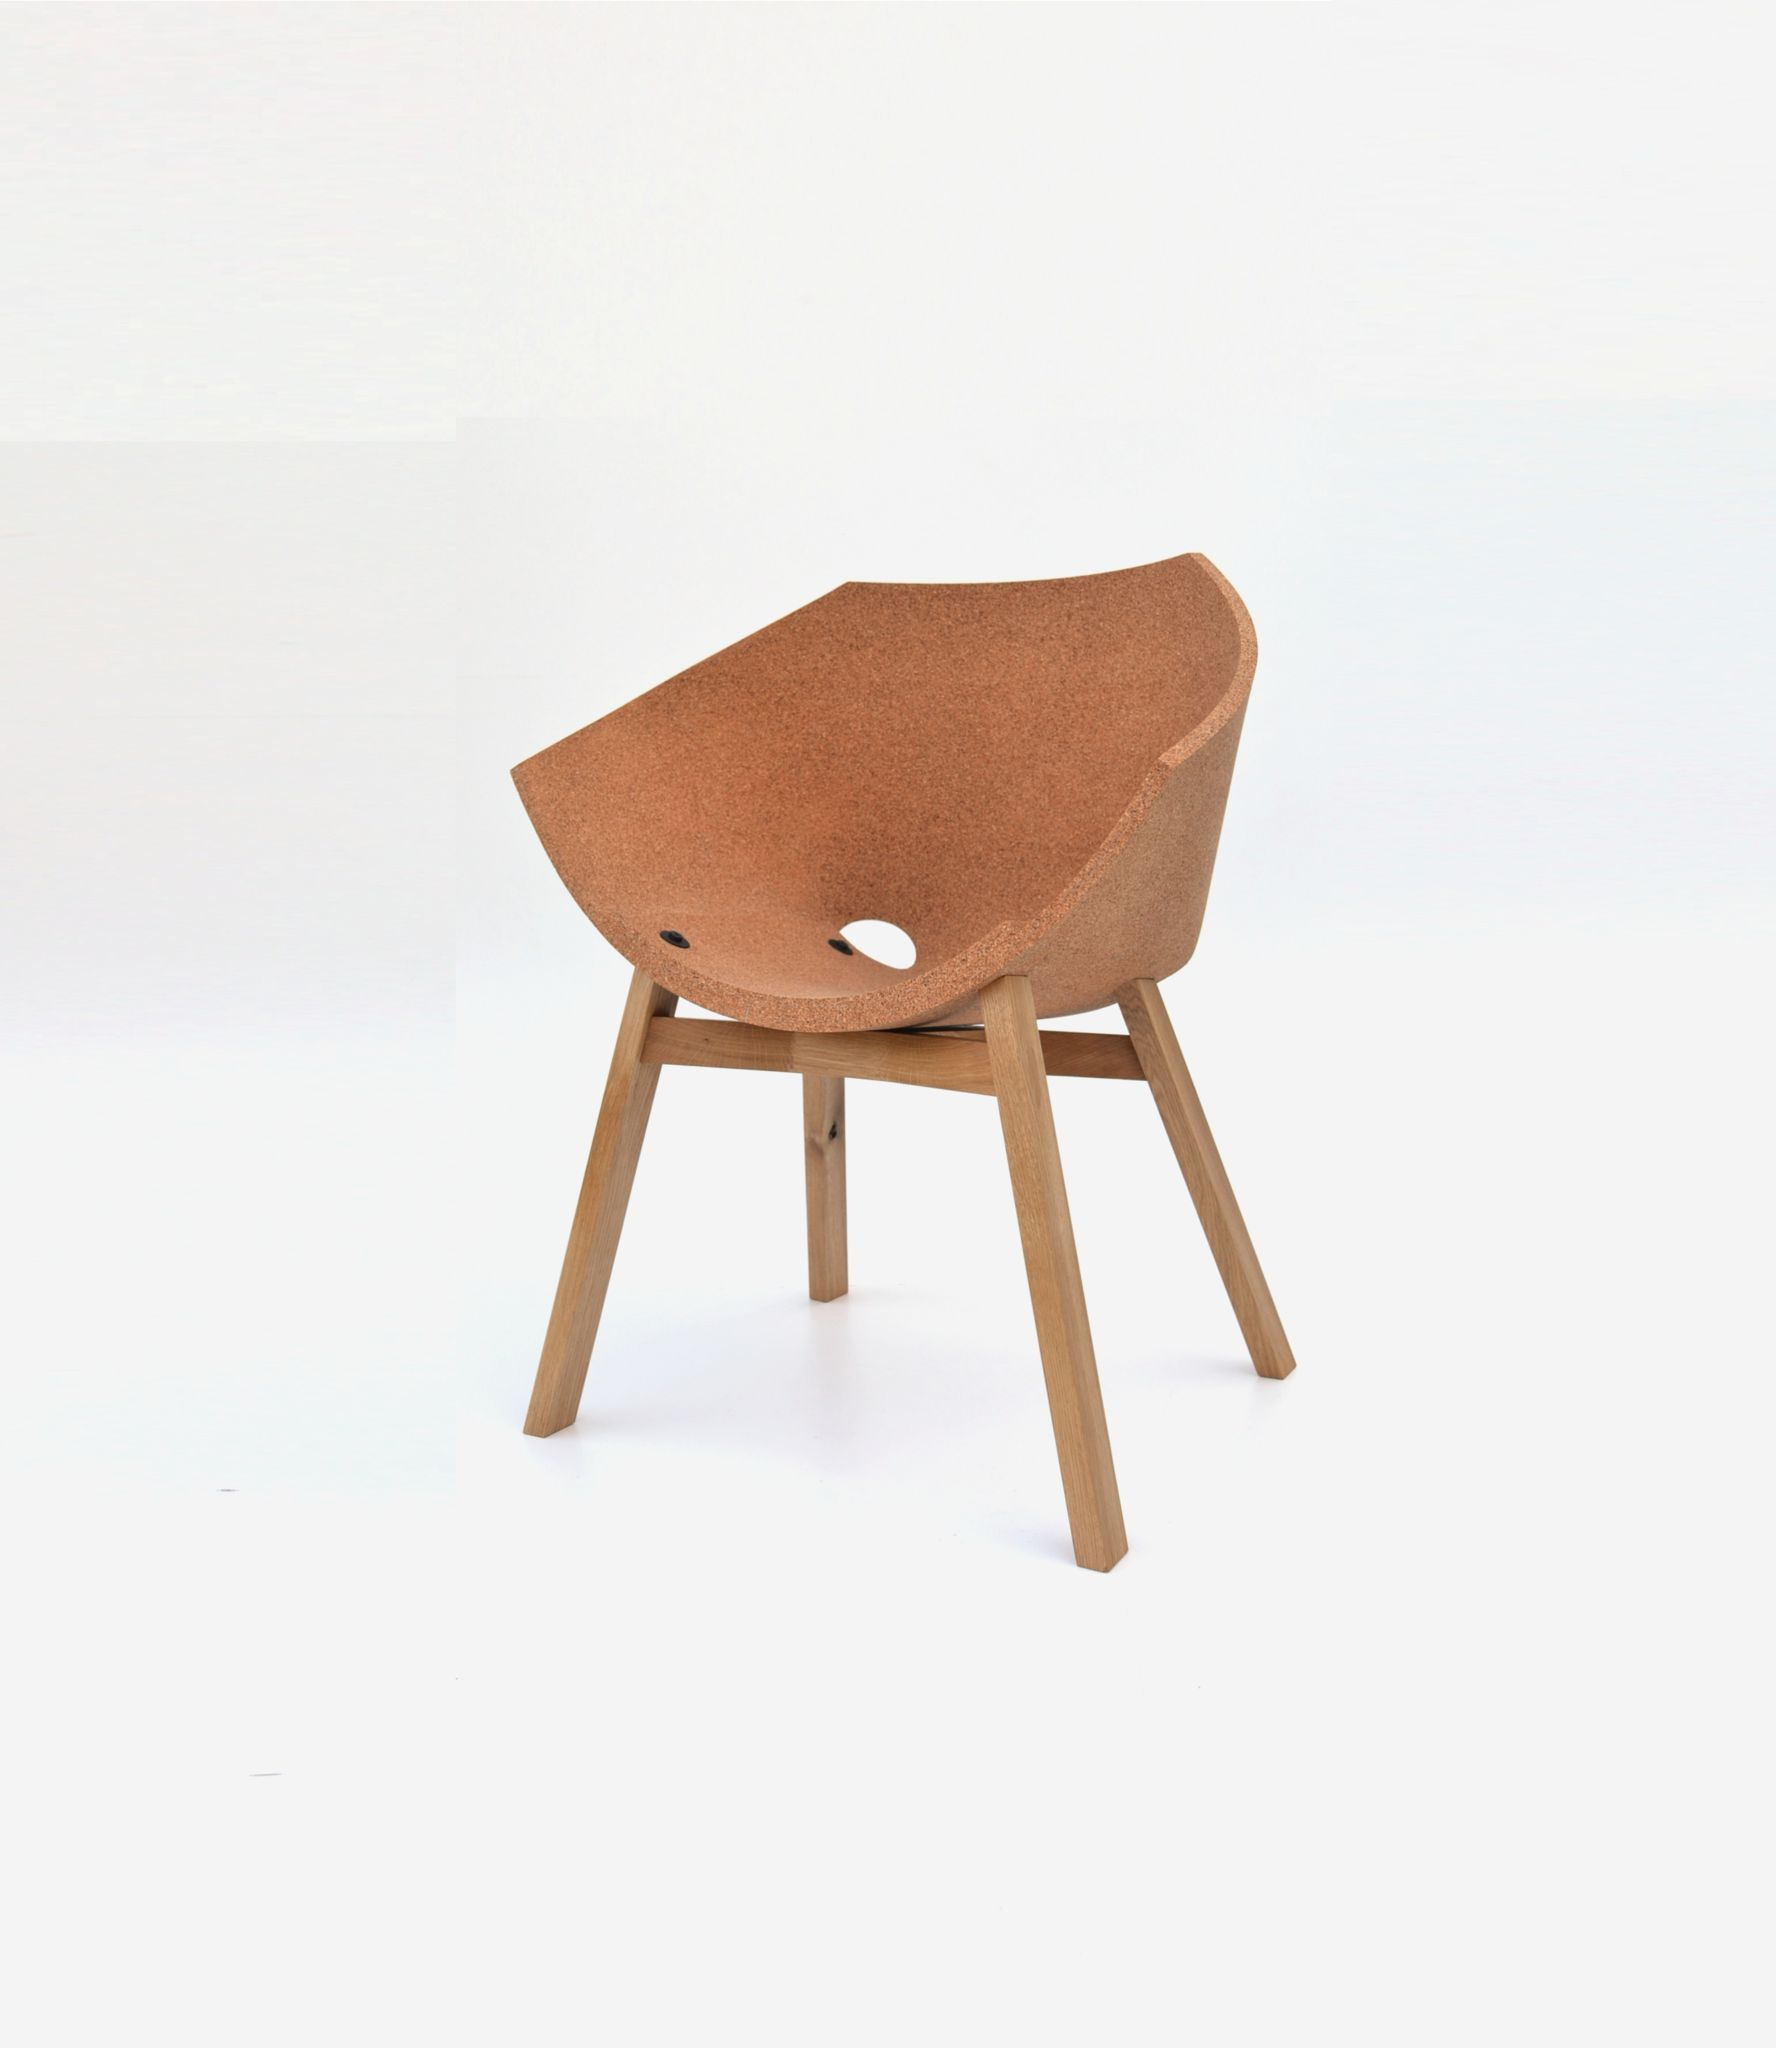 CORK CHAIR - Corkigami   Green Design Gallery   Eco-Chic Home